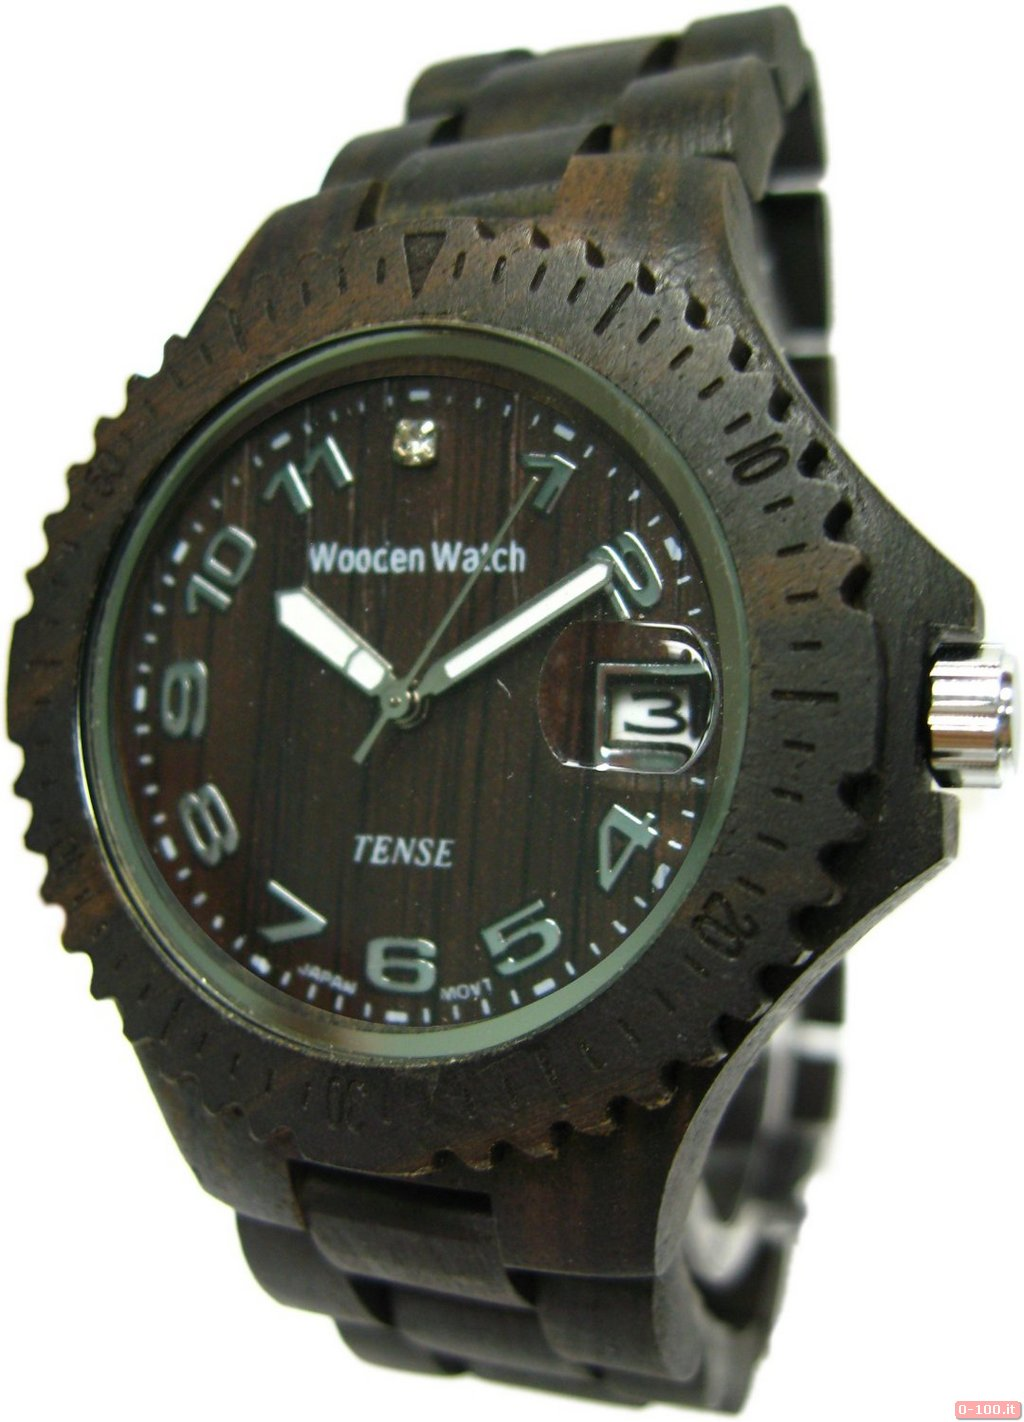 Tense Wood Watch_0-1003